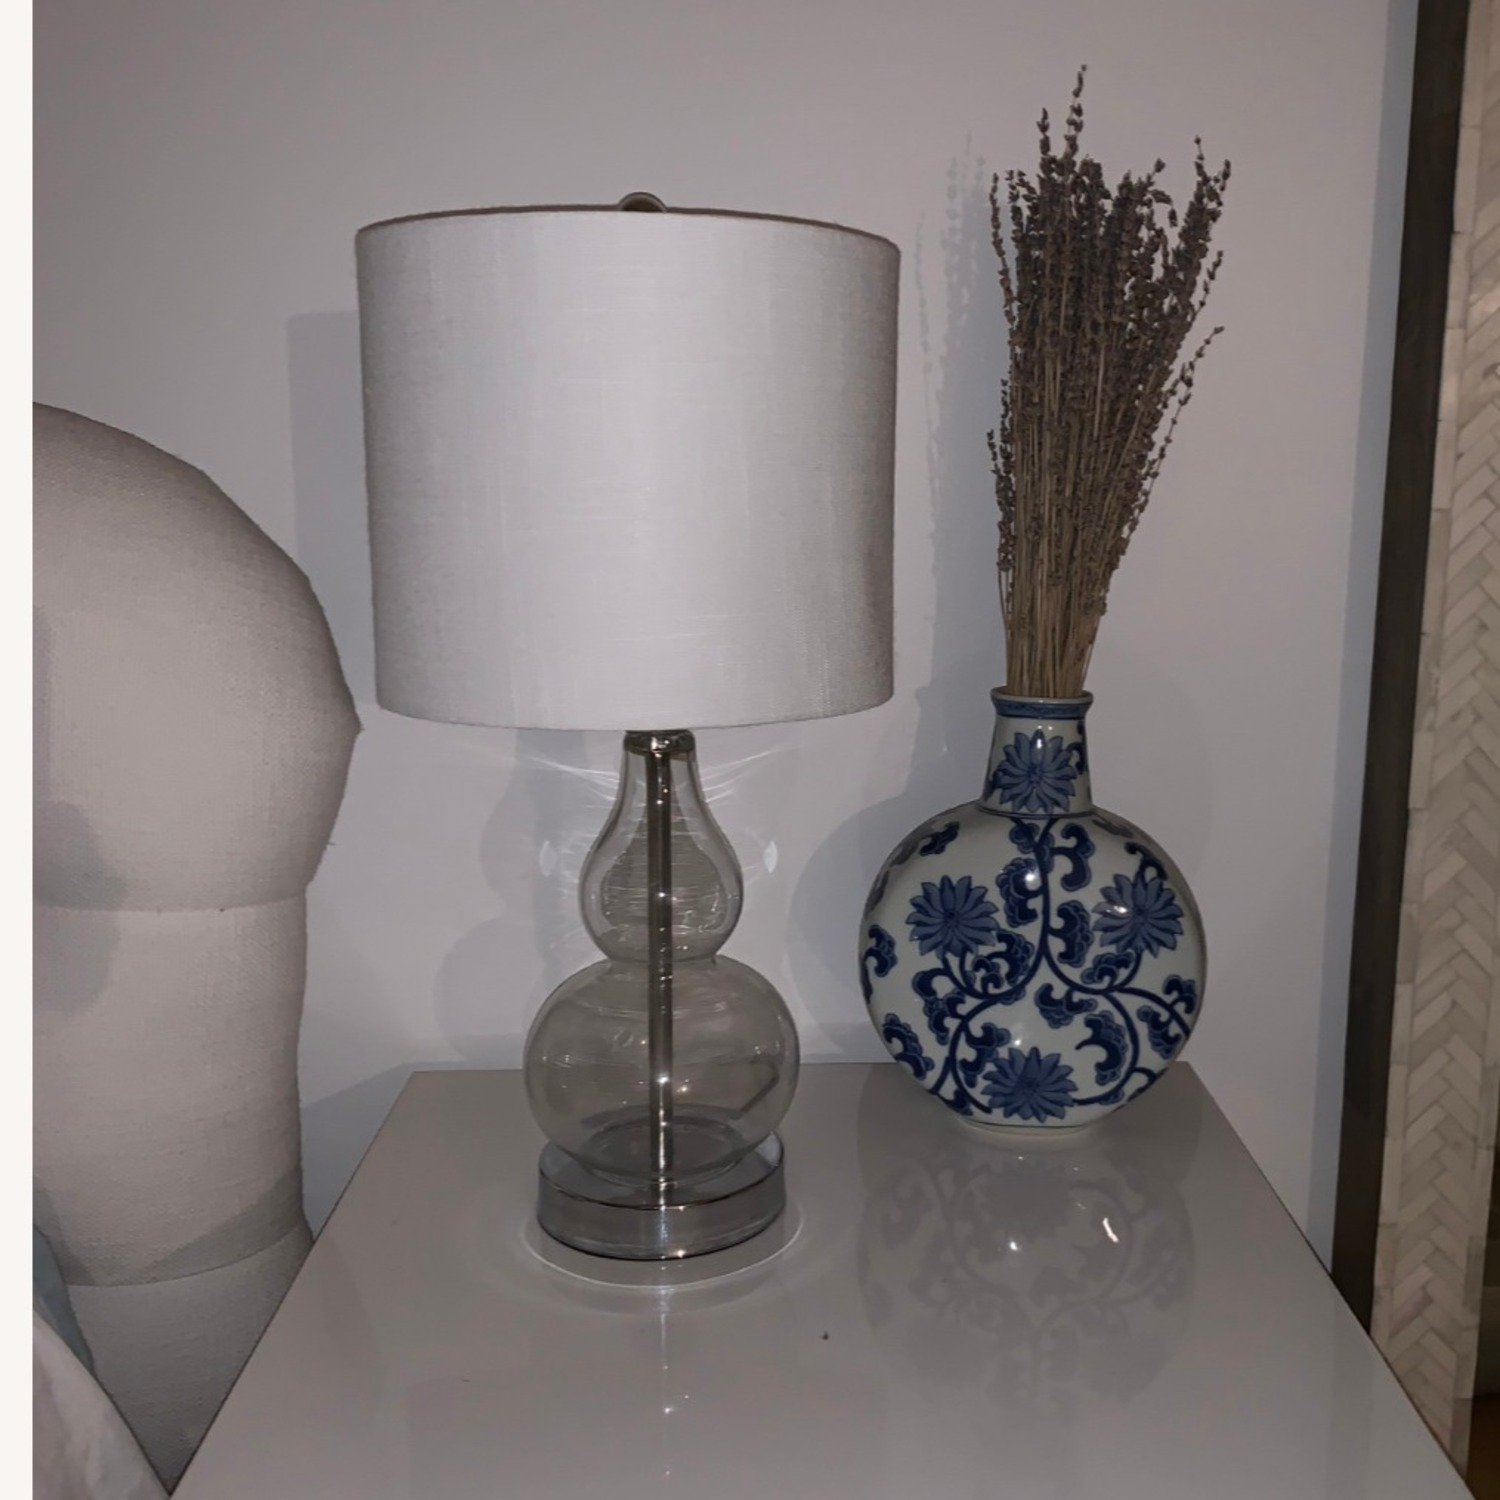 Houzz Two Glass and White Fabric Table Lamps - image-7